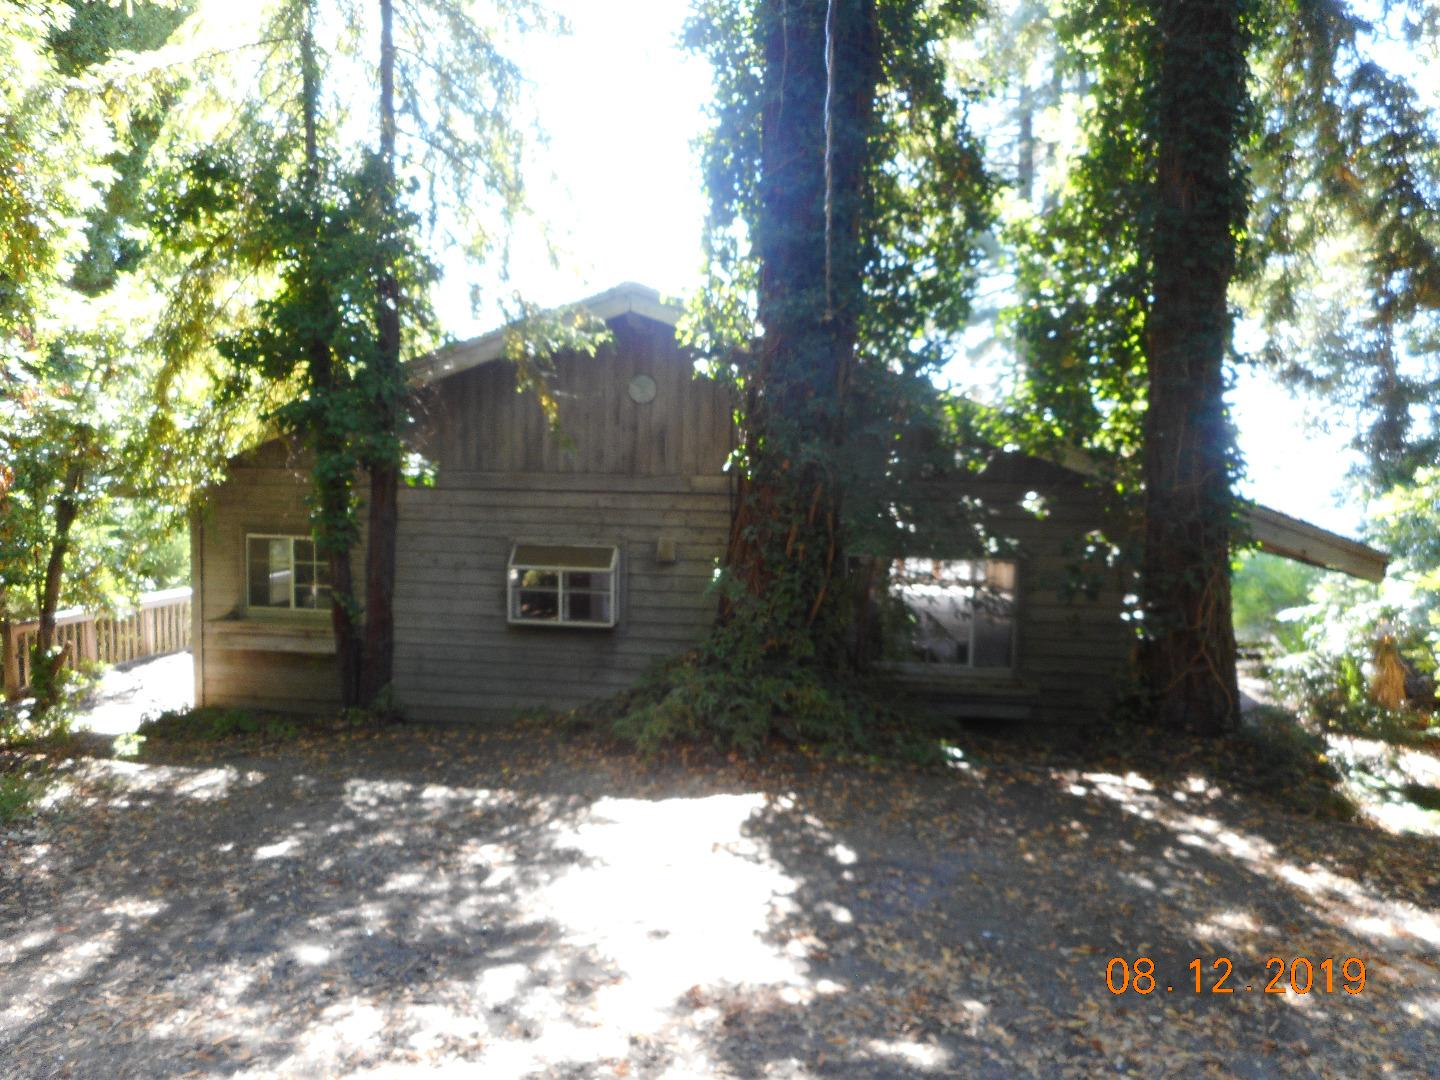 41 acres with a large house in pristine Santa Cruz mountain setting. Bank owned REO. Tons of potential. House is a fixer upper. The land has some gently sloped areas and some steeply sloped ones.  Driveway is NOT for cars with low clearance. 4 wheel drive would be best. Please do not go to house without consulting agent, there are hazards in and around the house. Buyer to investigate future use of land, seller and seller's agent make no predictions about future use. Gorgeous views all the way to coast in the distance. Forest setting. Once again - there are safety concerns. Please call L.A. prior to visiting. This property will NOT qualify for conventional financing. Cash or Hard Money loan only.